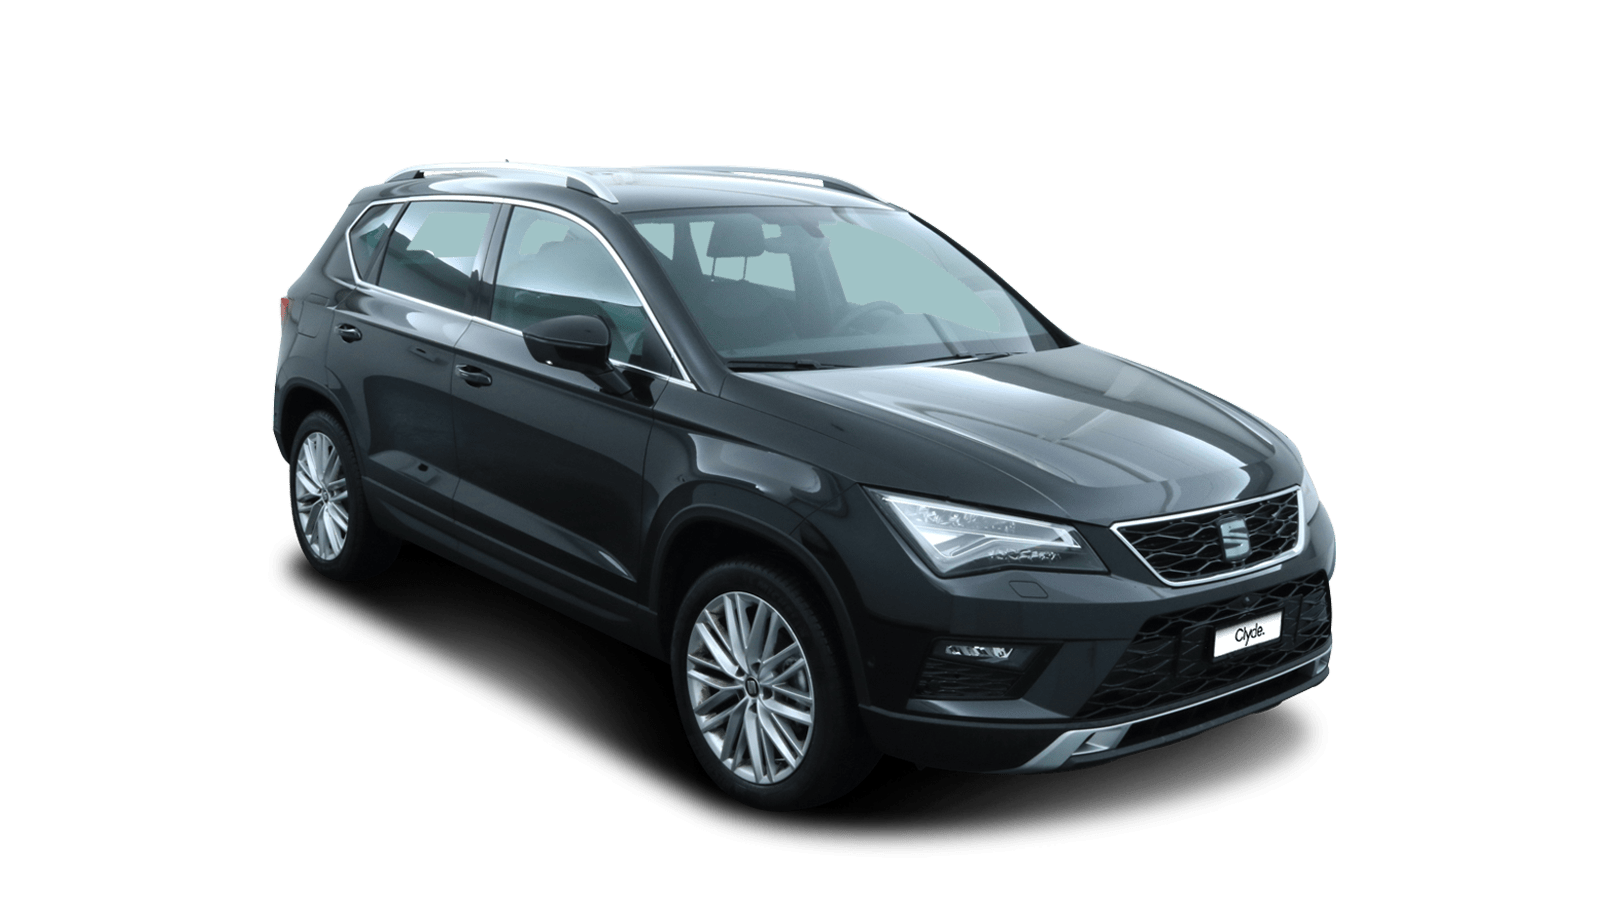 SEAT Ateca Black front - Clyde car subscription